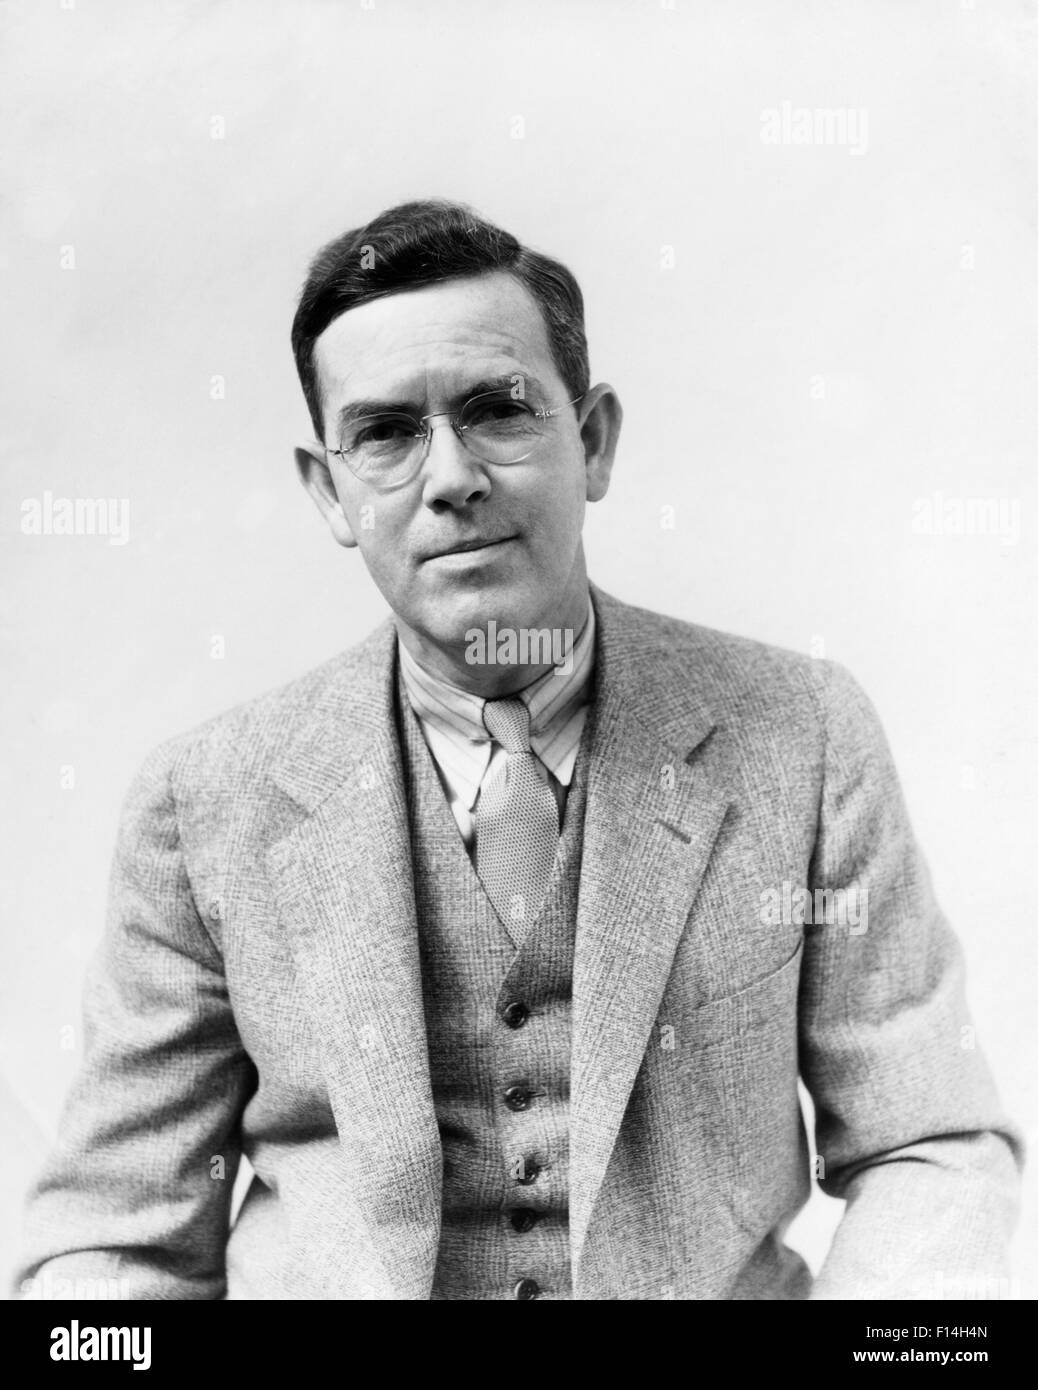 1930s PORTRAIT MAN PHOTOGRAPHER H. ARMSTRONG ROBERTS WEARING GLASSES SUIT VEST TIE LOOKING AT CAMERA - Stock Image